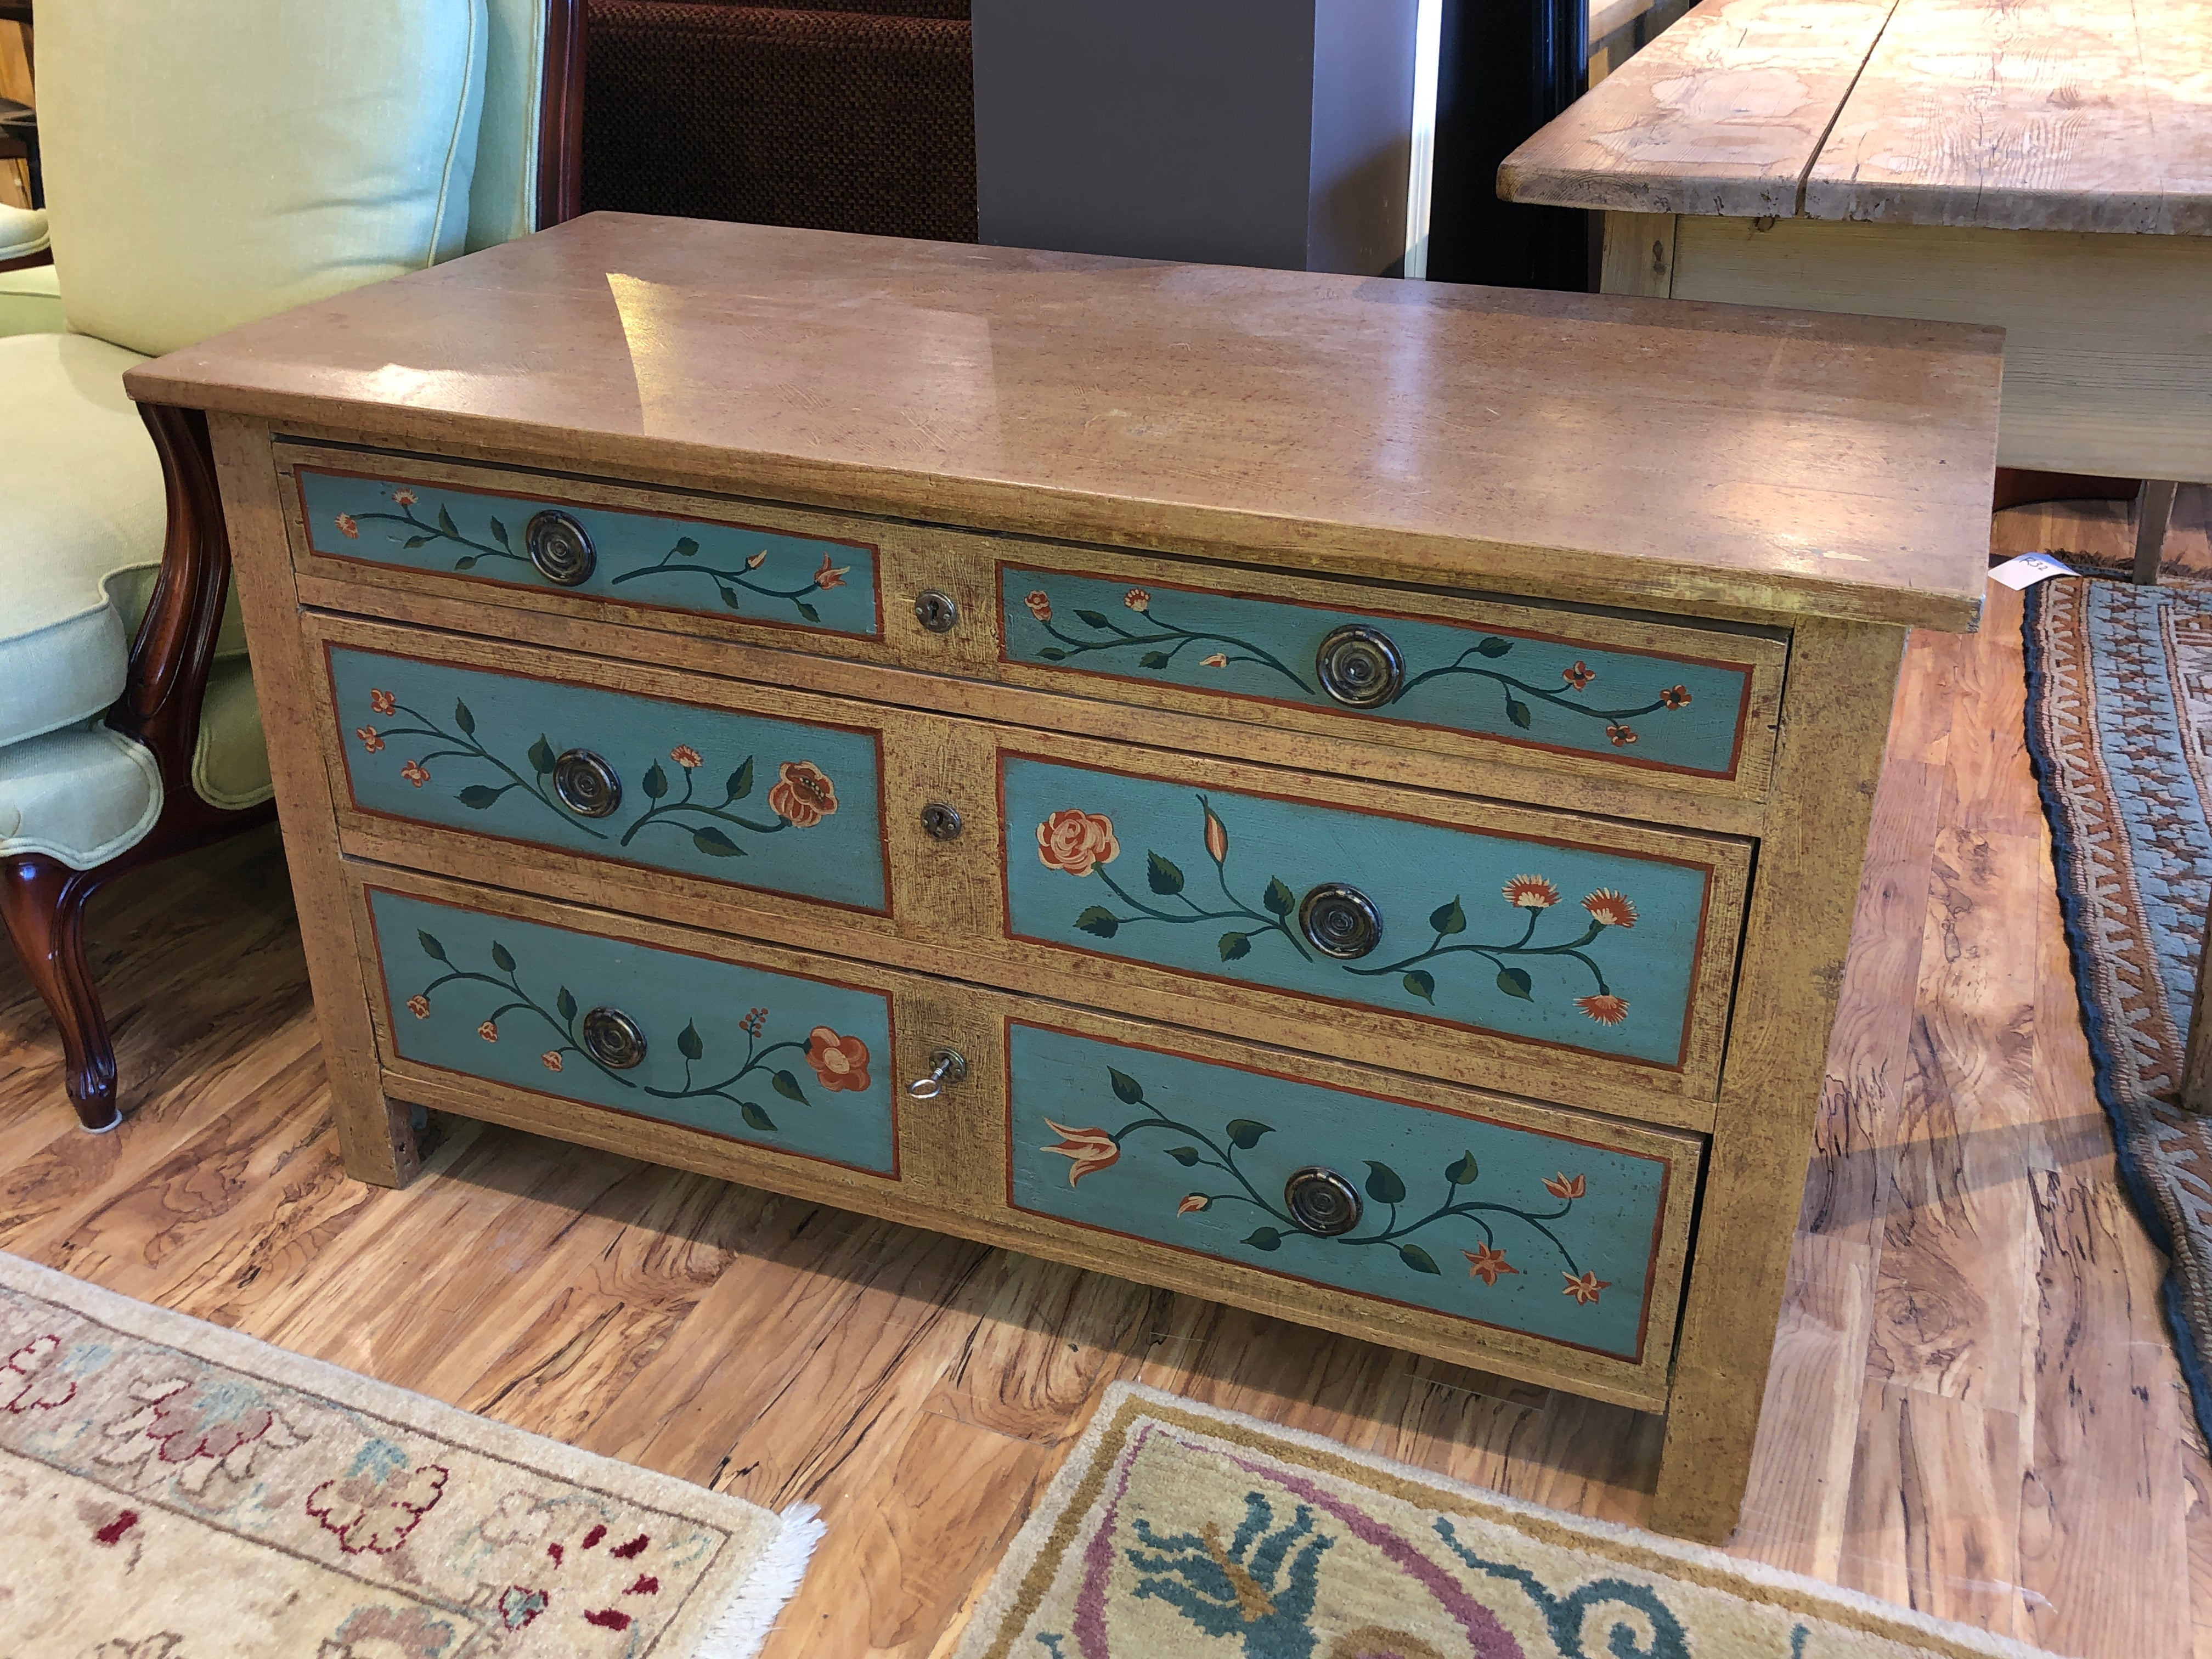 Vintage grain painted chest of drawers